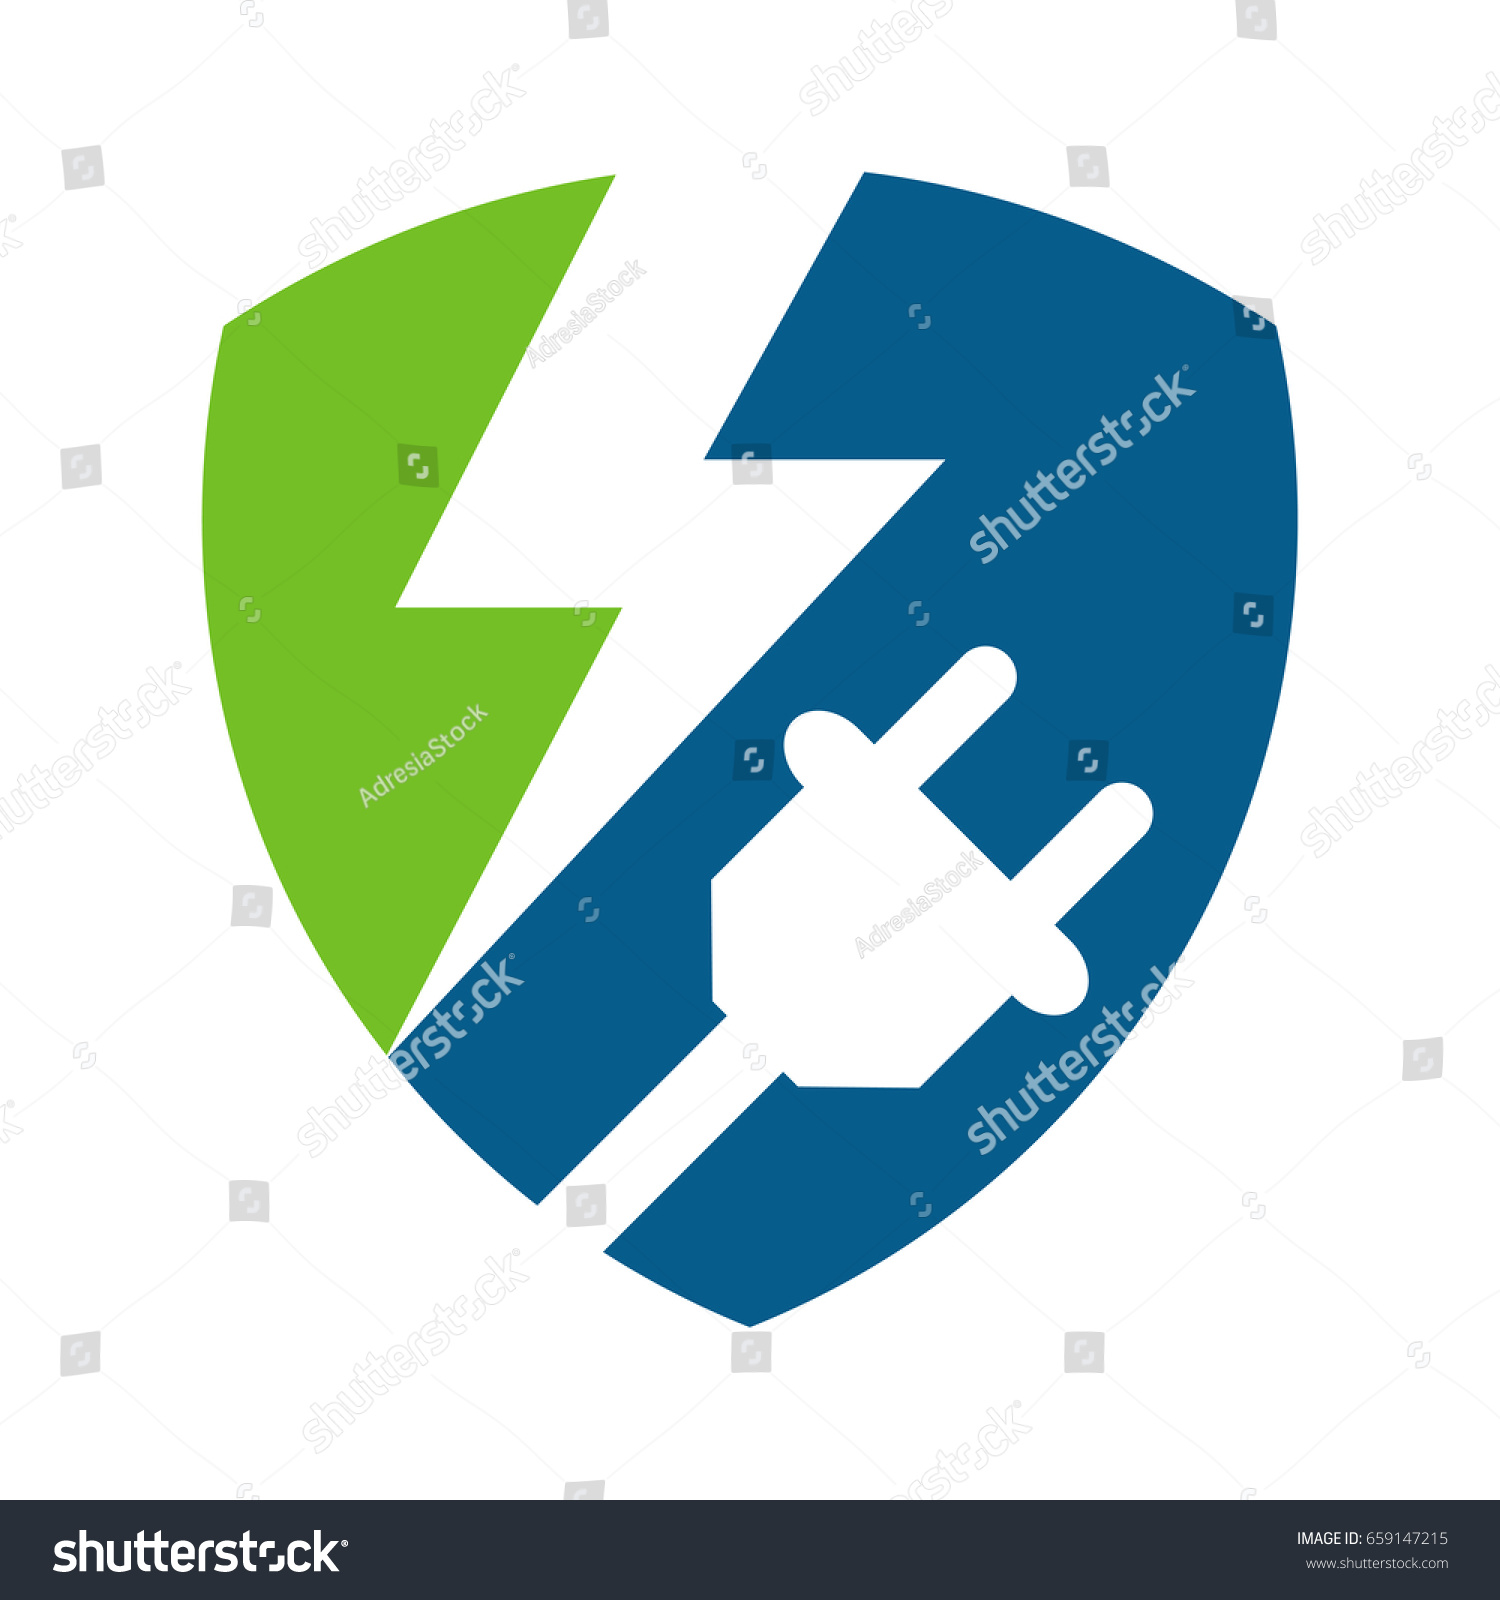 Protection Management Electrical Power Supply Resources Stock Vector ...